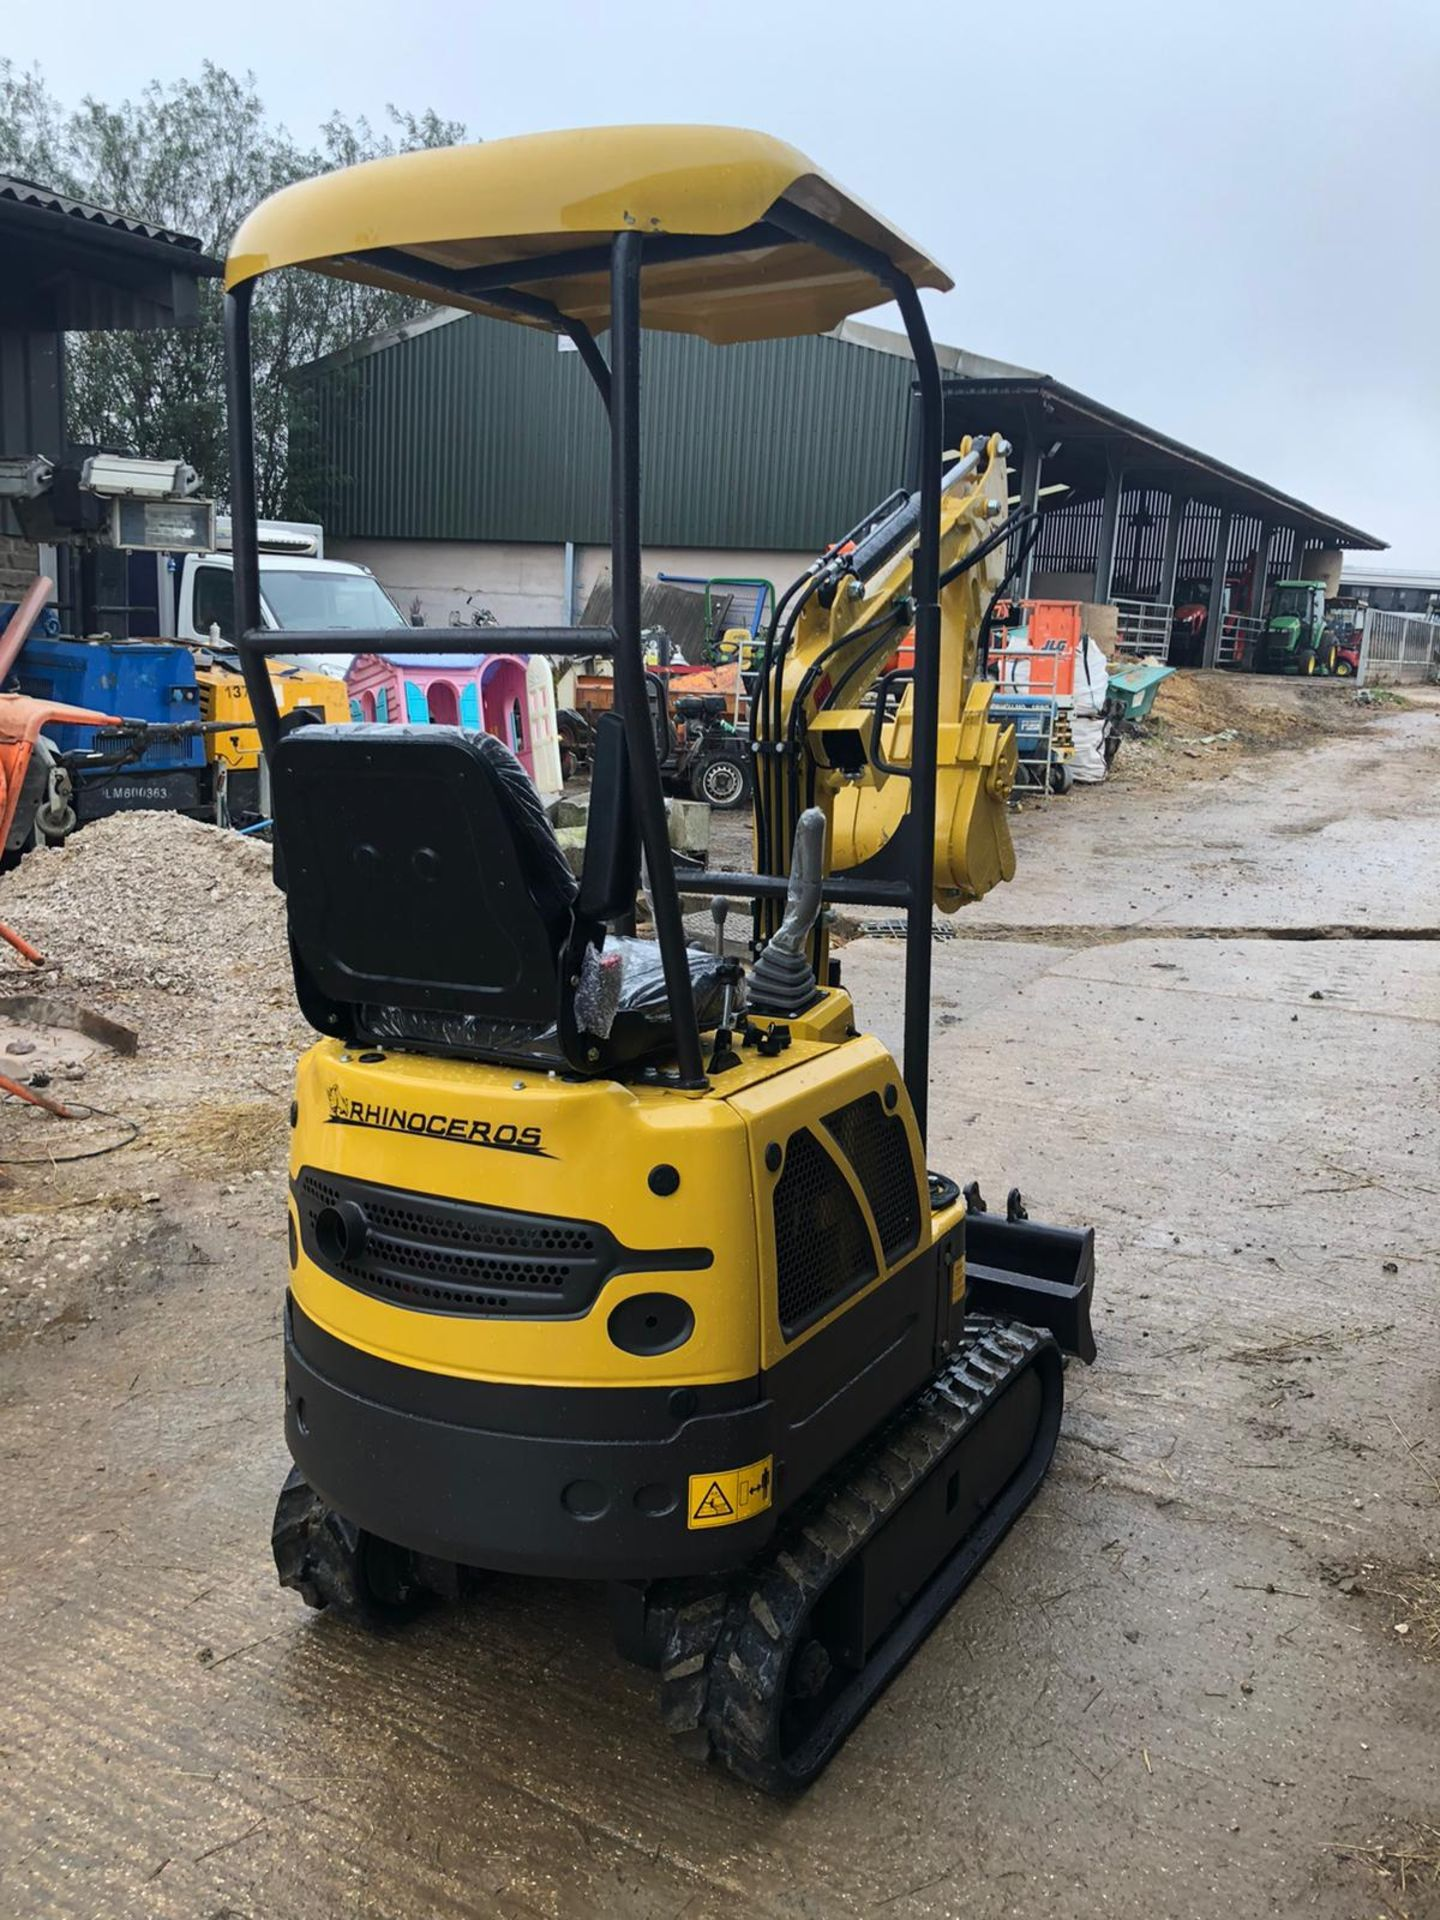 2020 RHINOCEROS XN08 EXCAVATOR RUBBER TRACKS, CANOPY, 3 X BUCKETS, RUNS, DRIVES AND DIGS *PLUS VAT* - Image 2 of 5